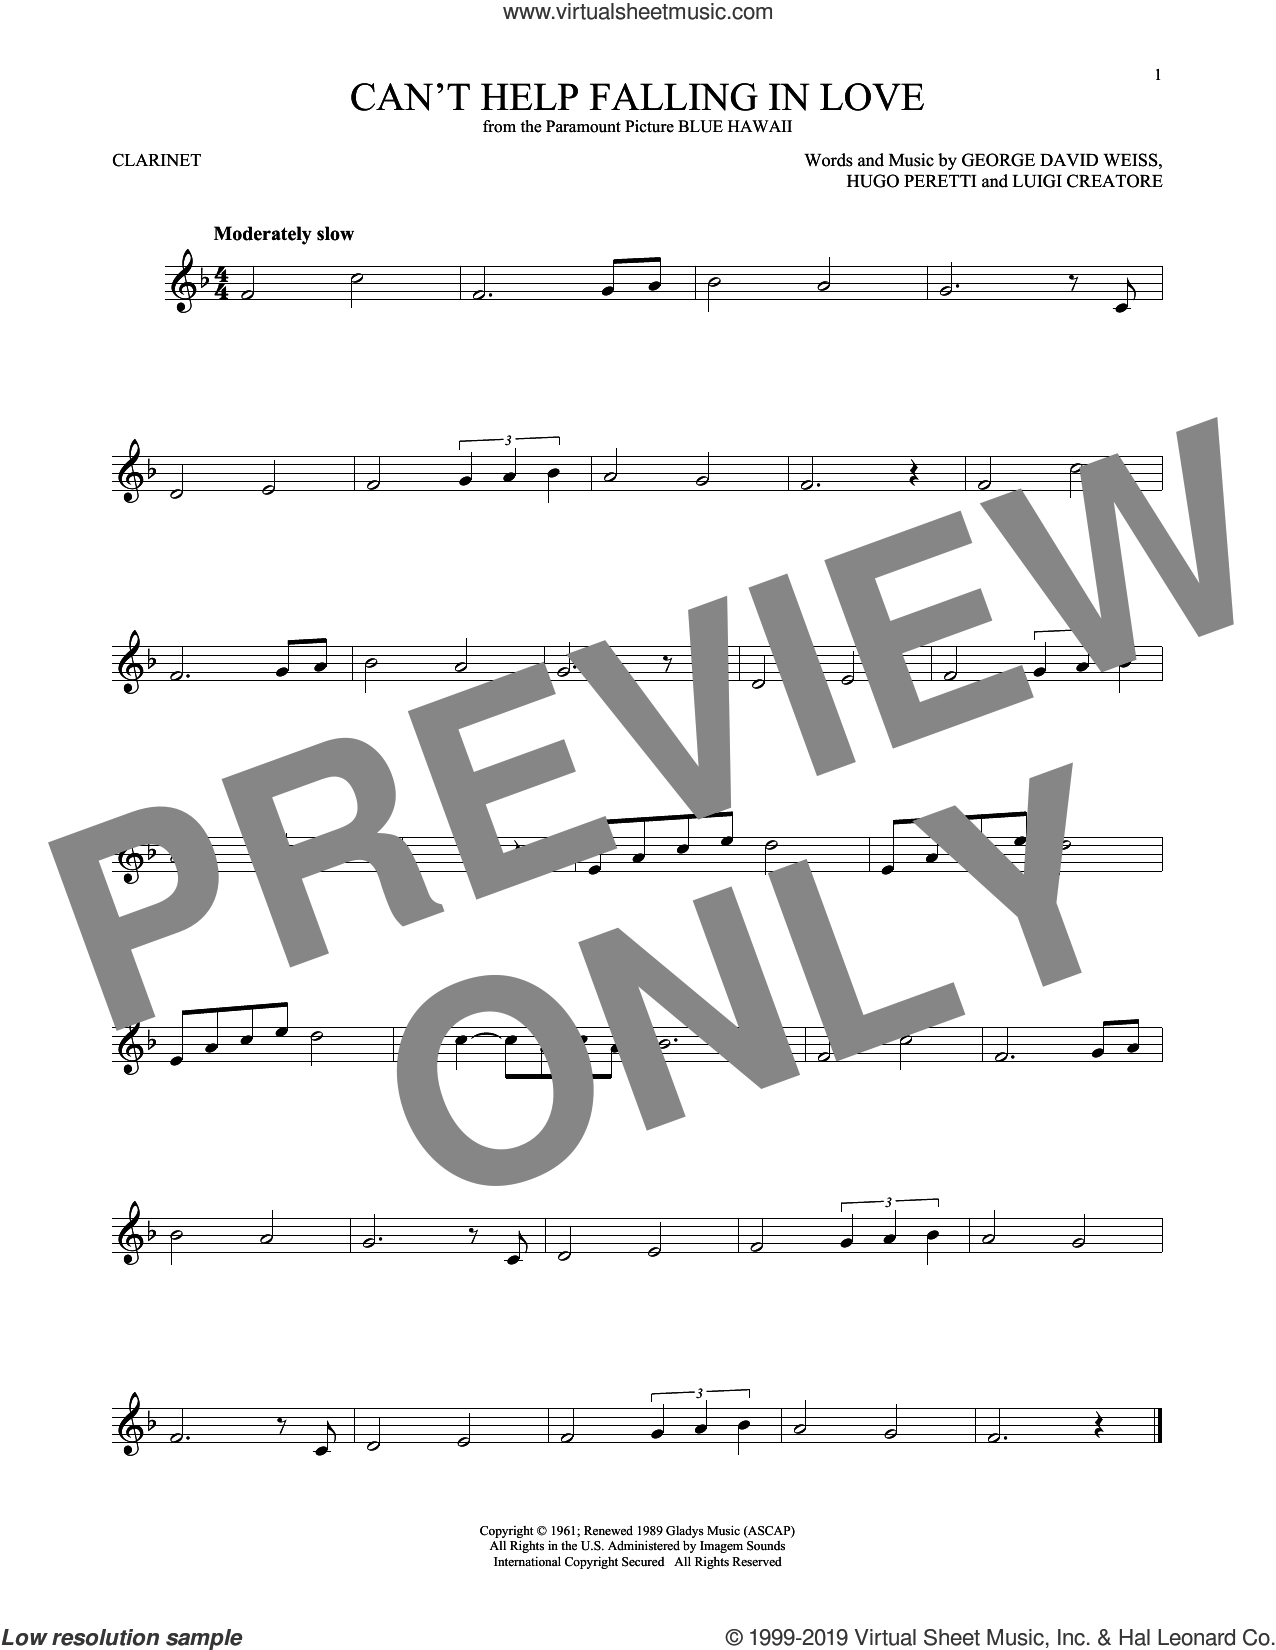 Can't Help Falling In Love sheet music for clarinet solo by Elvis Presley, George David Weiss, Hugo Peretti and Luigi Creatore, intermediate skill level